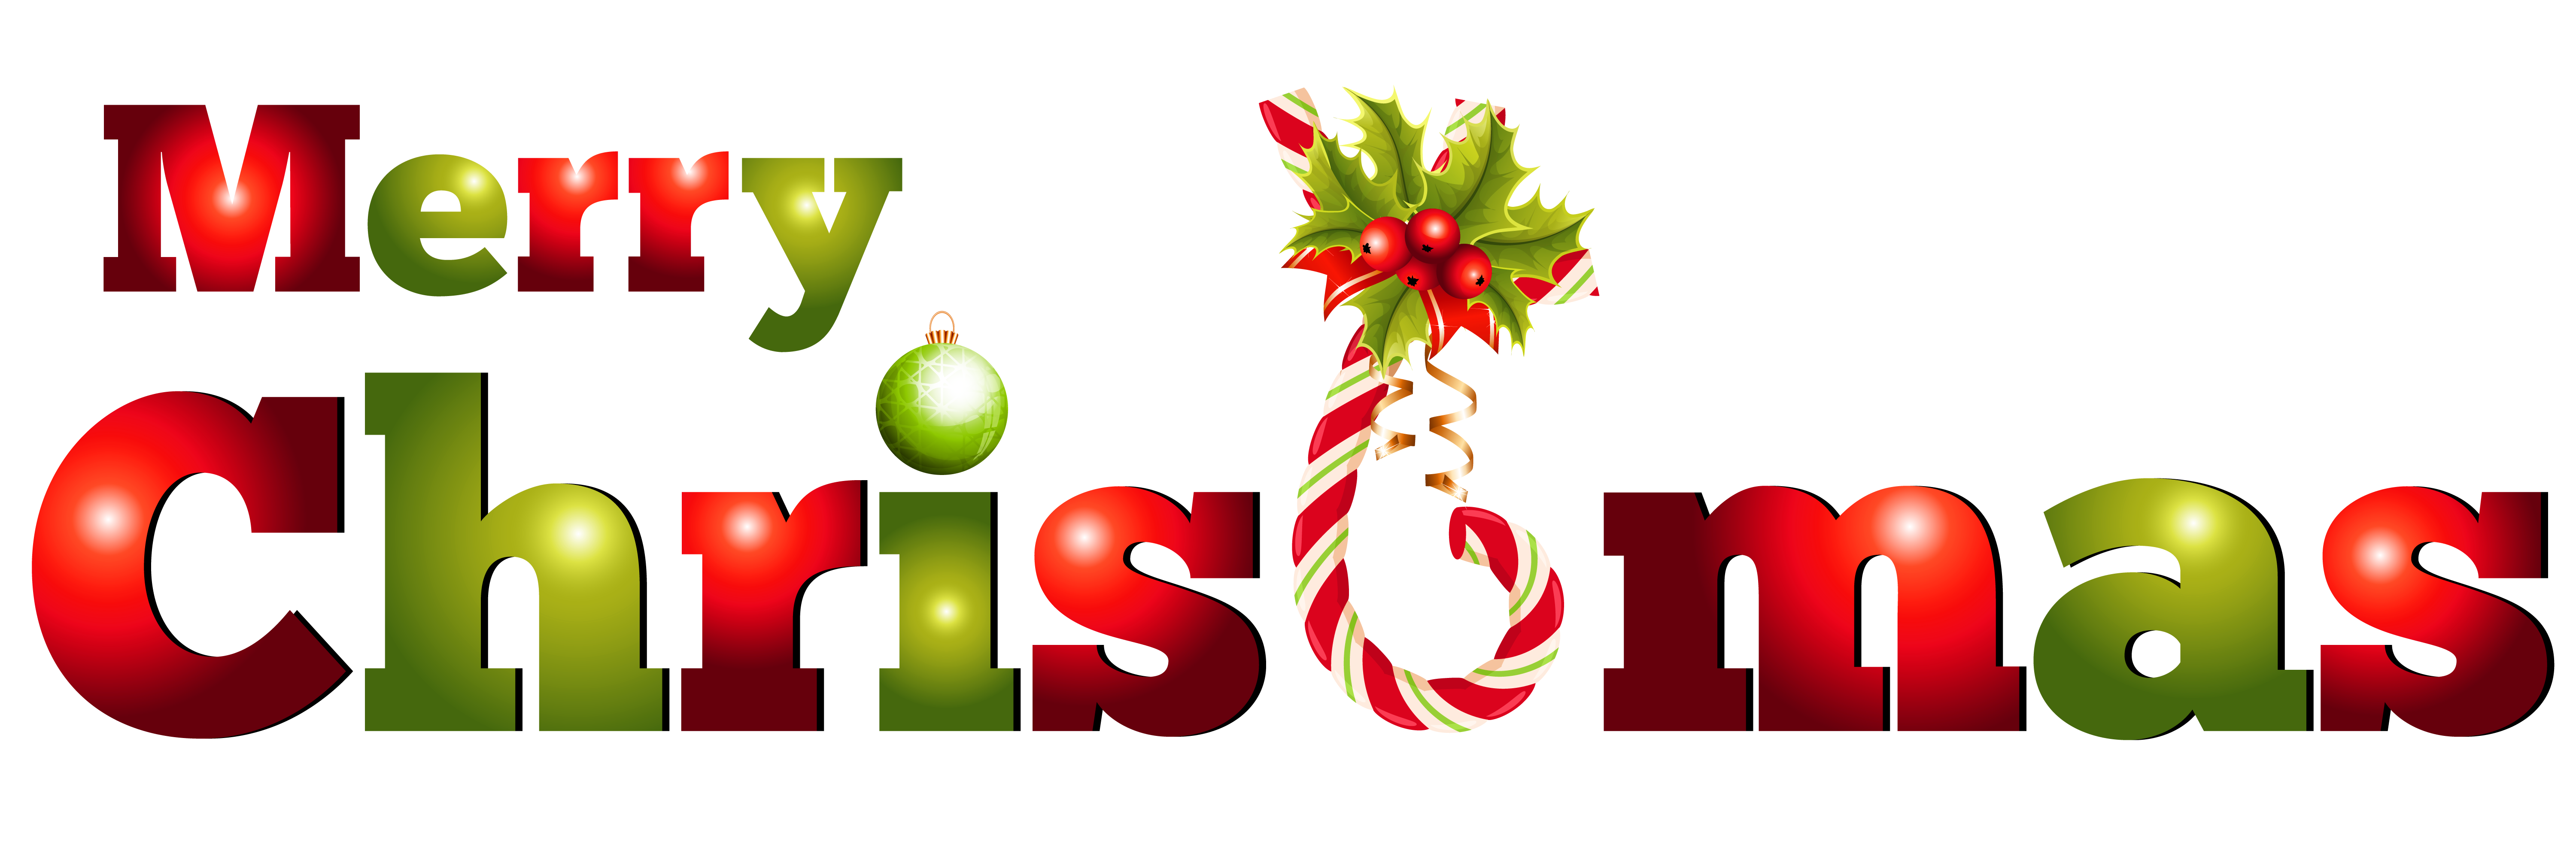 Merry Christmas Clip Art (04) - Merry Christmas Clipart